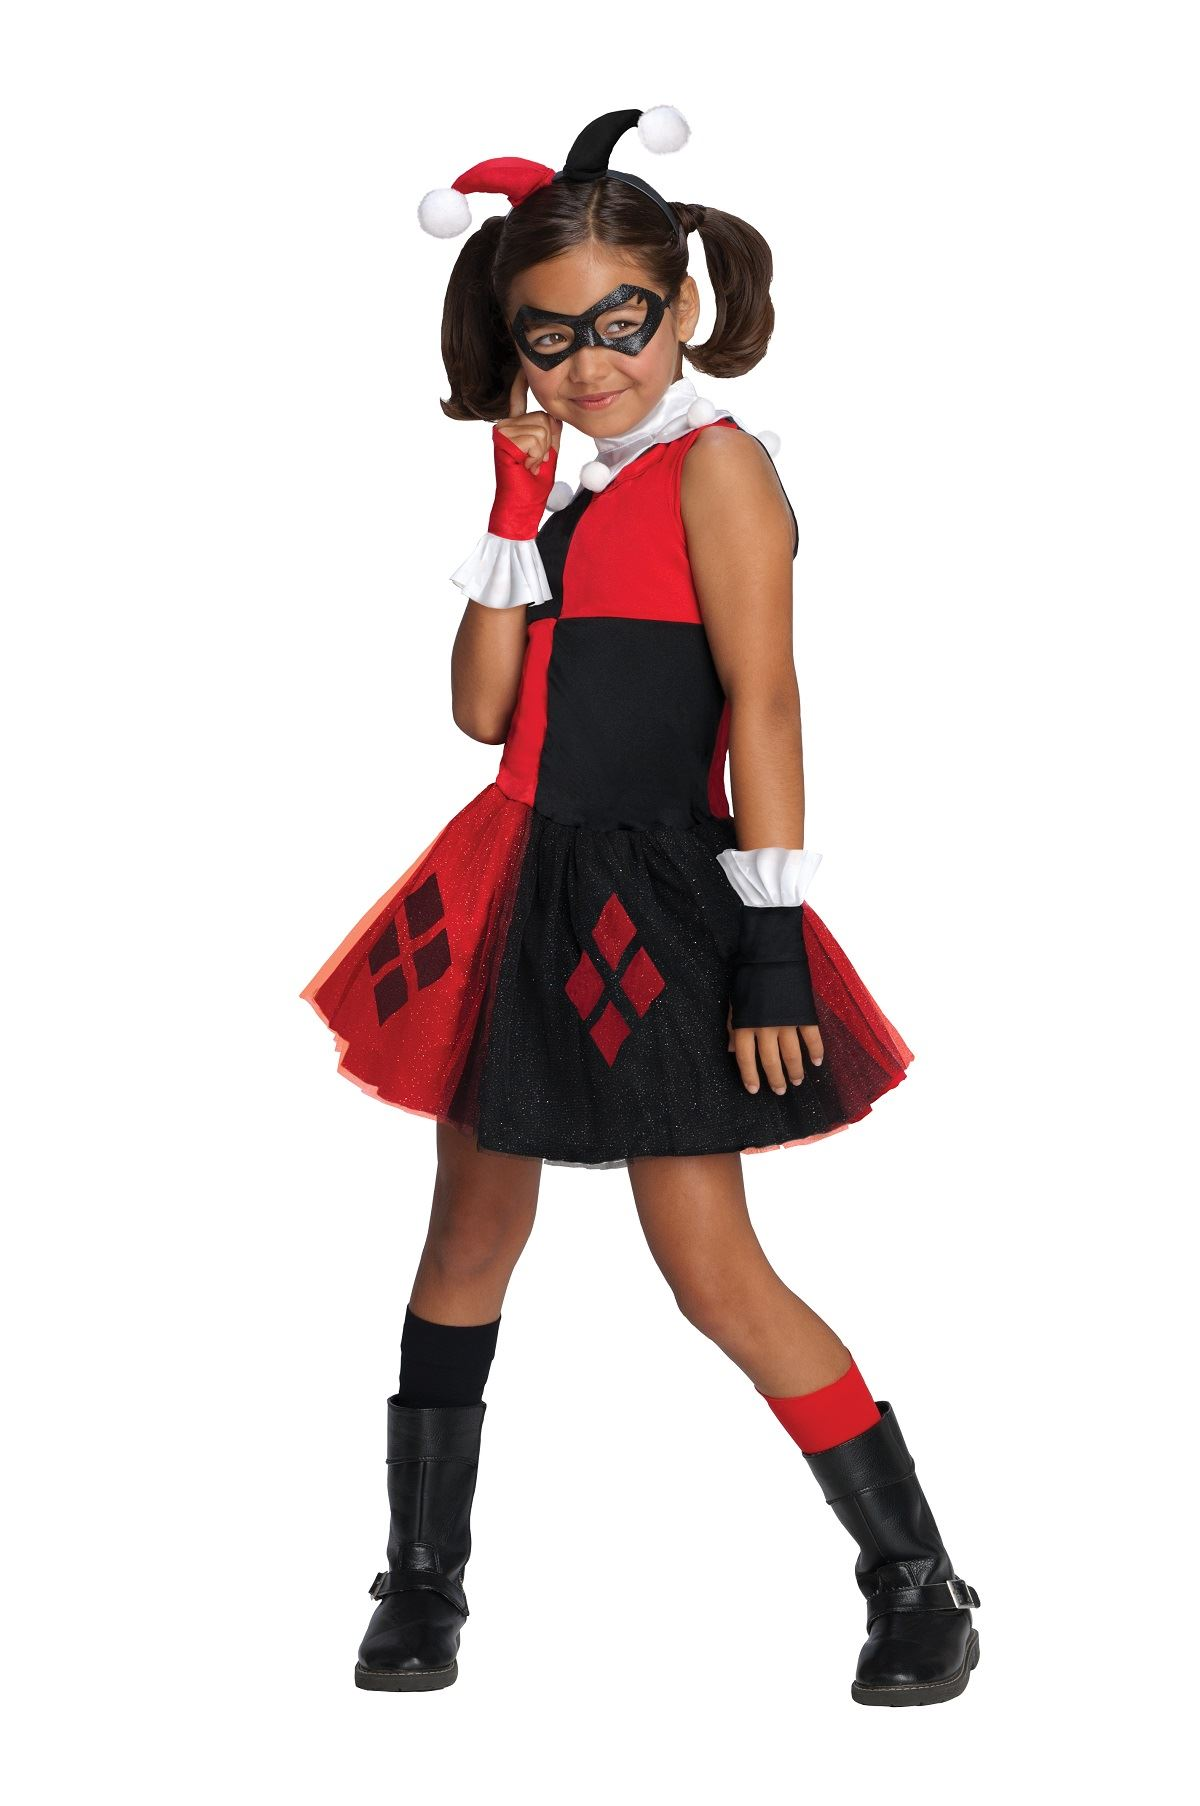 4d80cba86771 ... Kids Harley Quinn Super Villian Girls Costume. Click here to view Large  Image